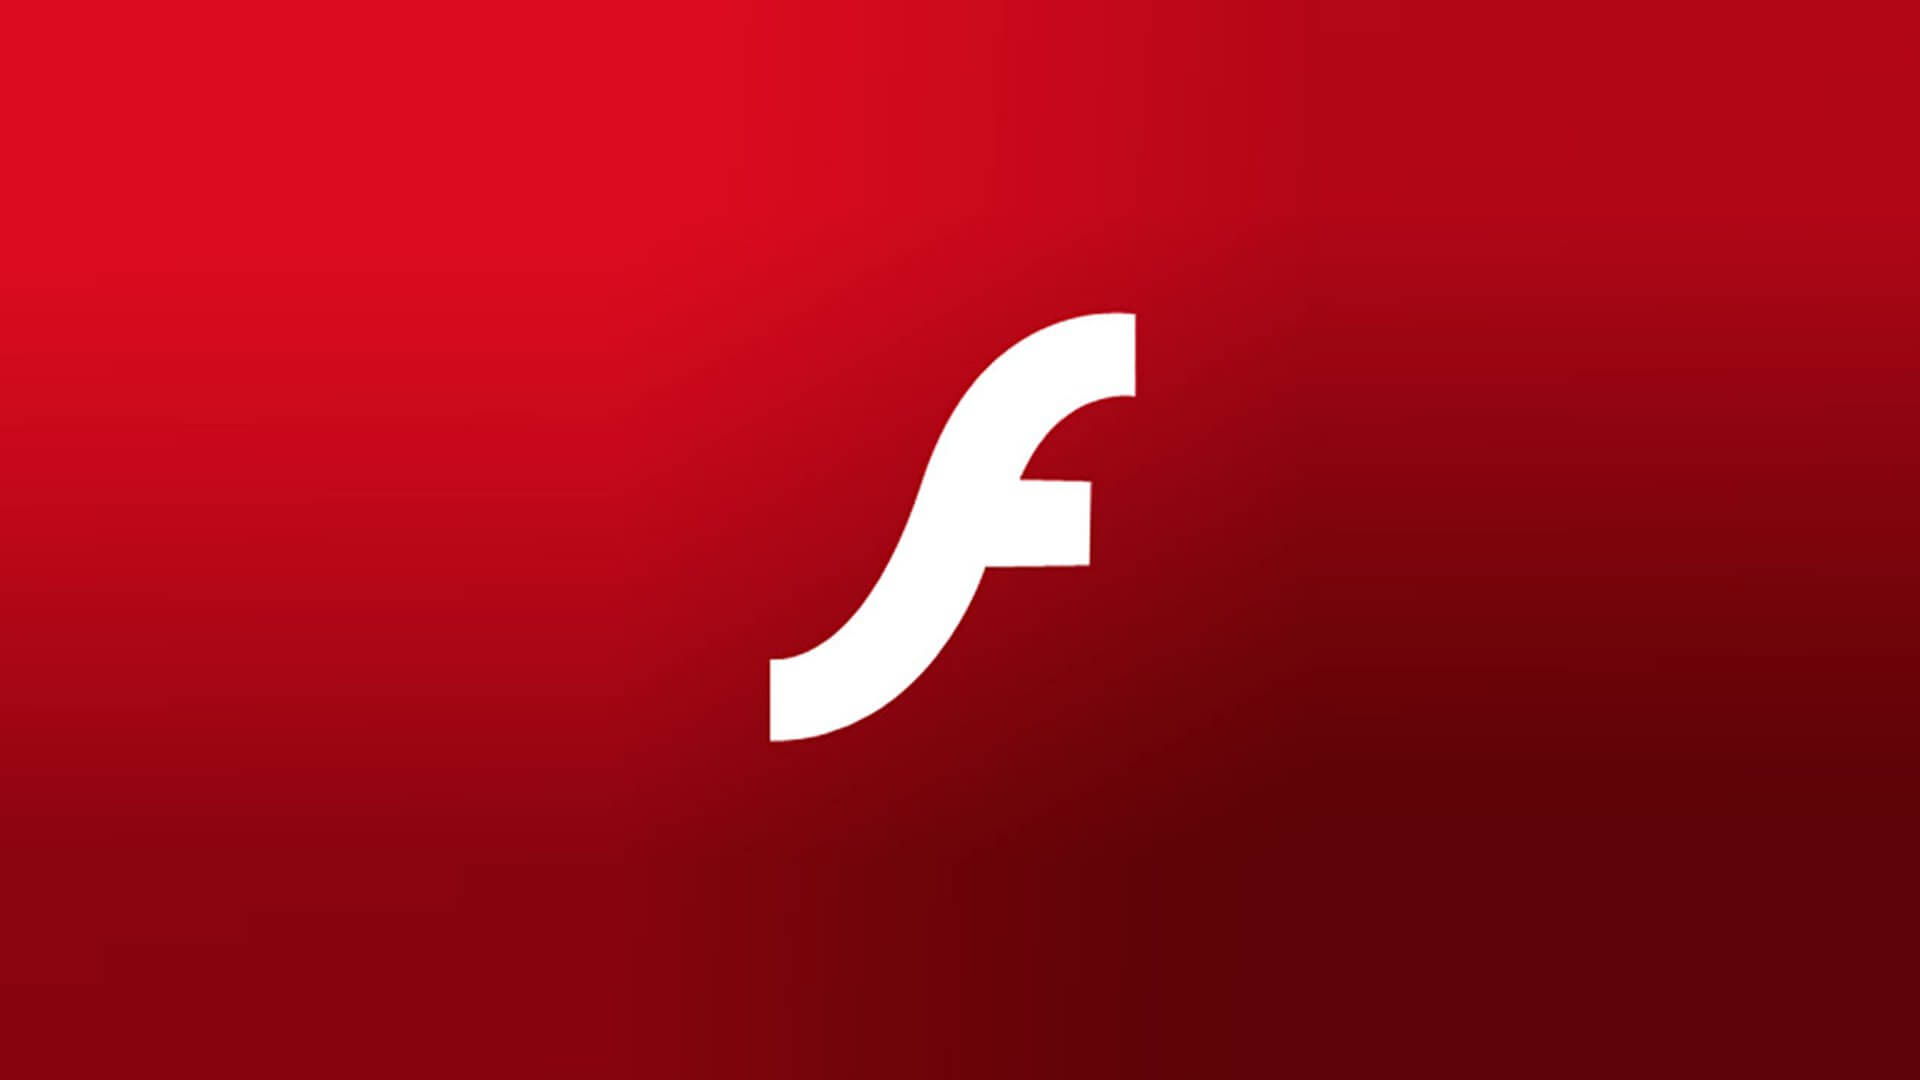 Windows 10 getting security updates for adobe flash player adobe flash player reheart Choice Image